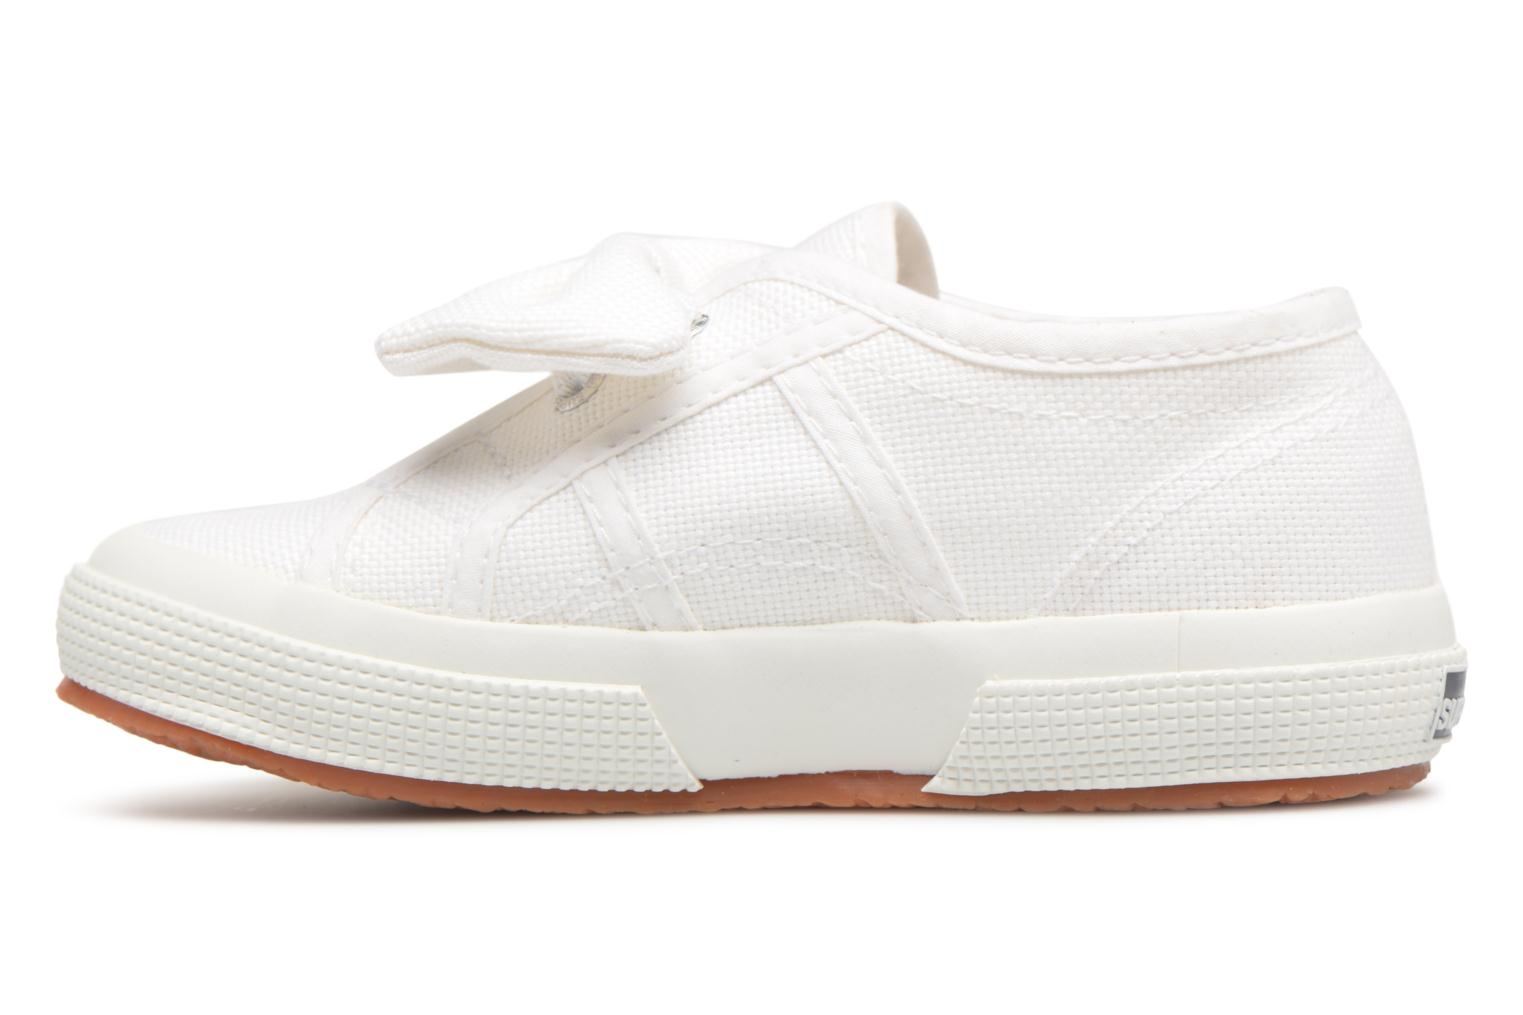 2866 Superga 2866 White CotJ CotJ Superga White 6vIgwxPqw